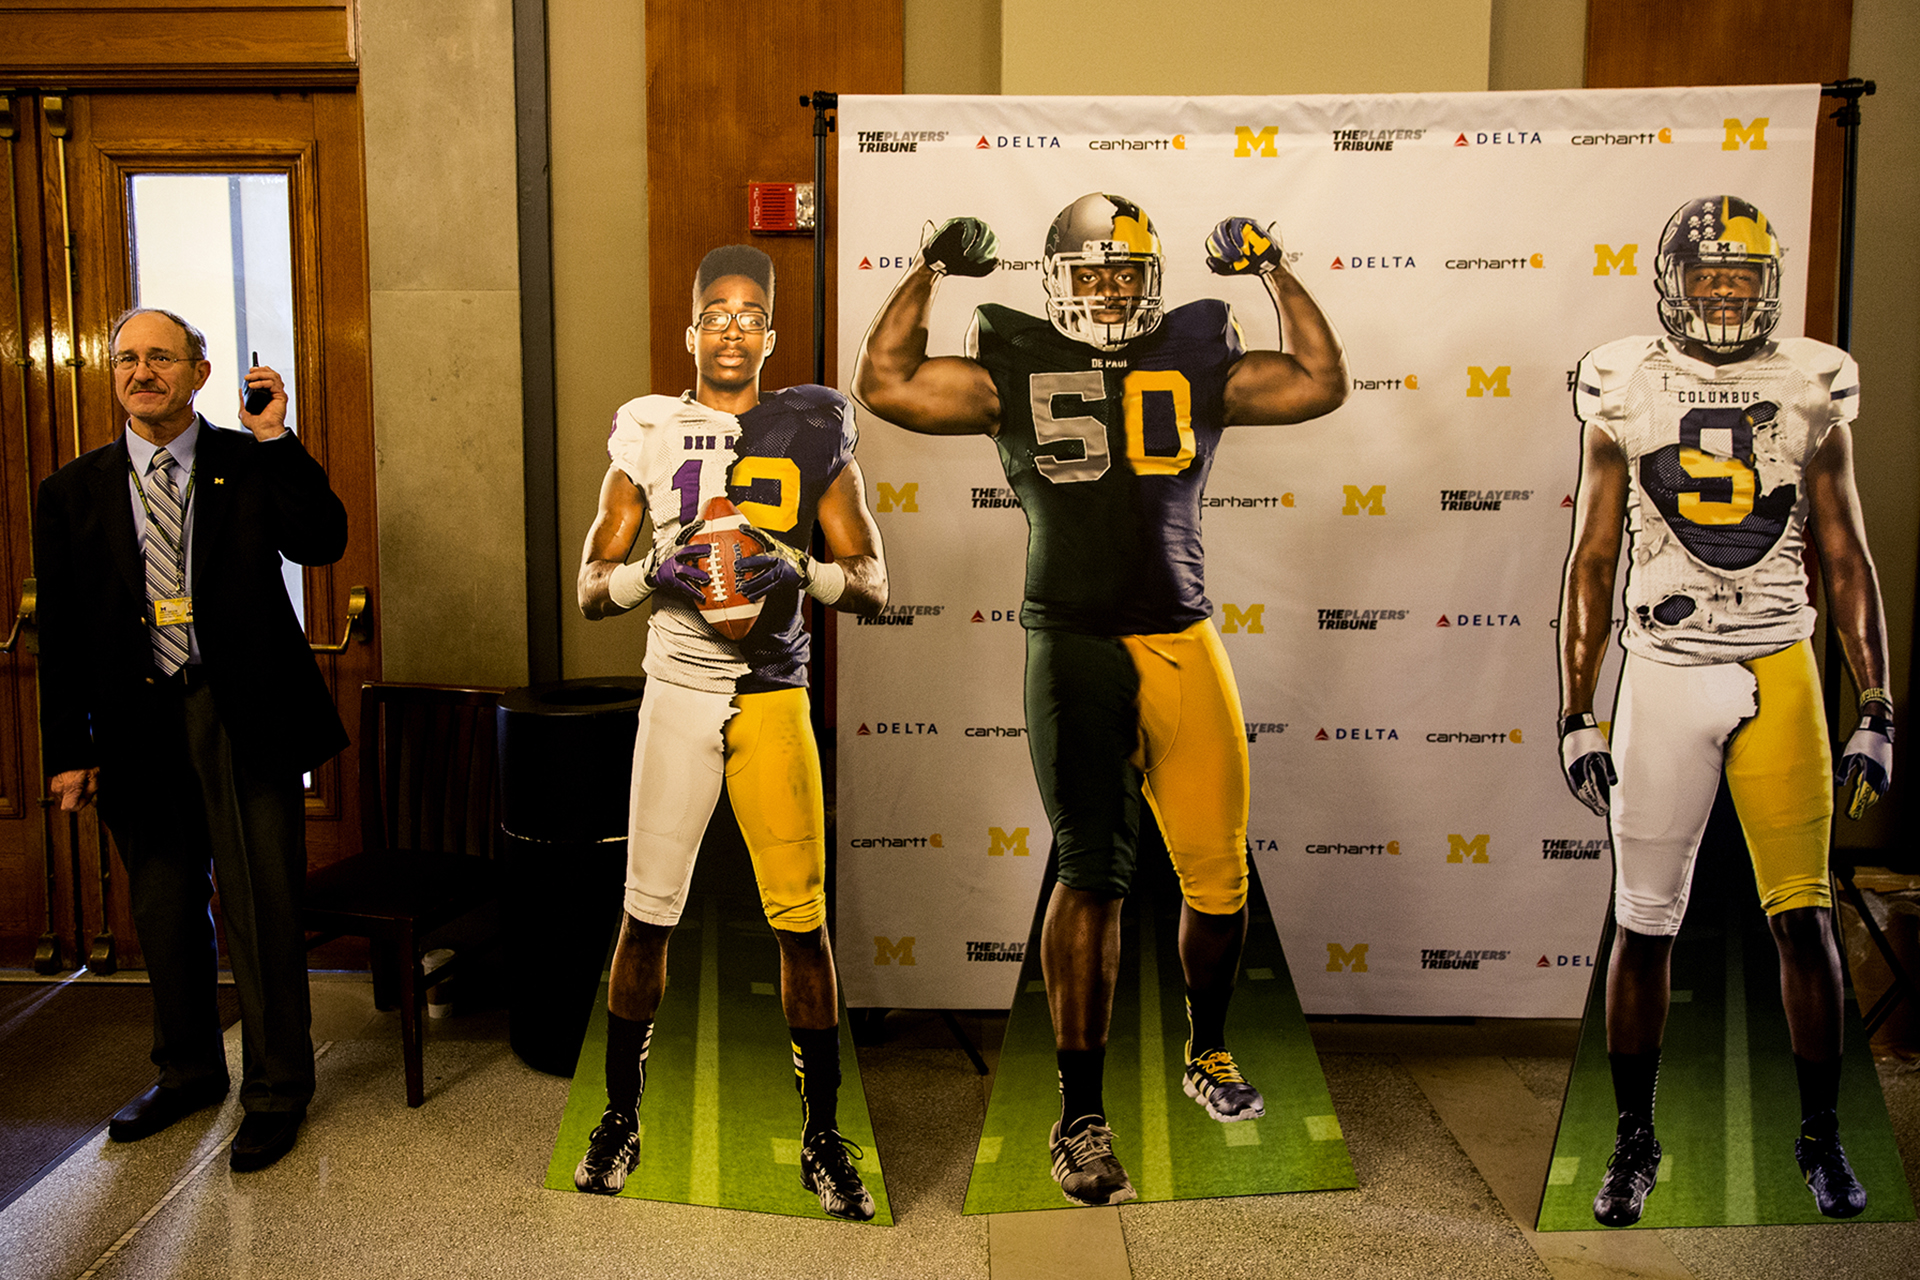 Cardboard cutouts of the Michigan signees stand in the lobby.